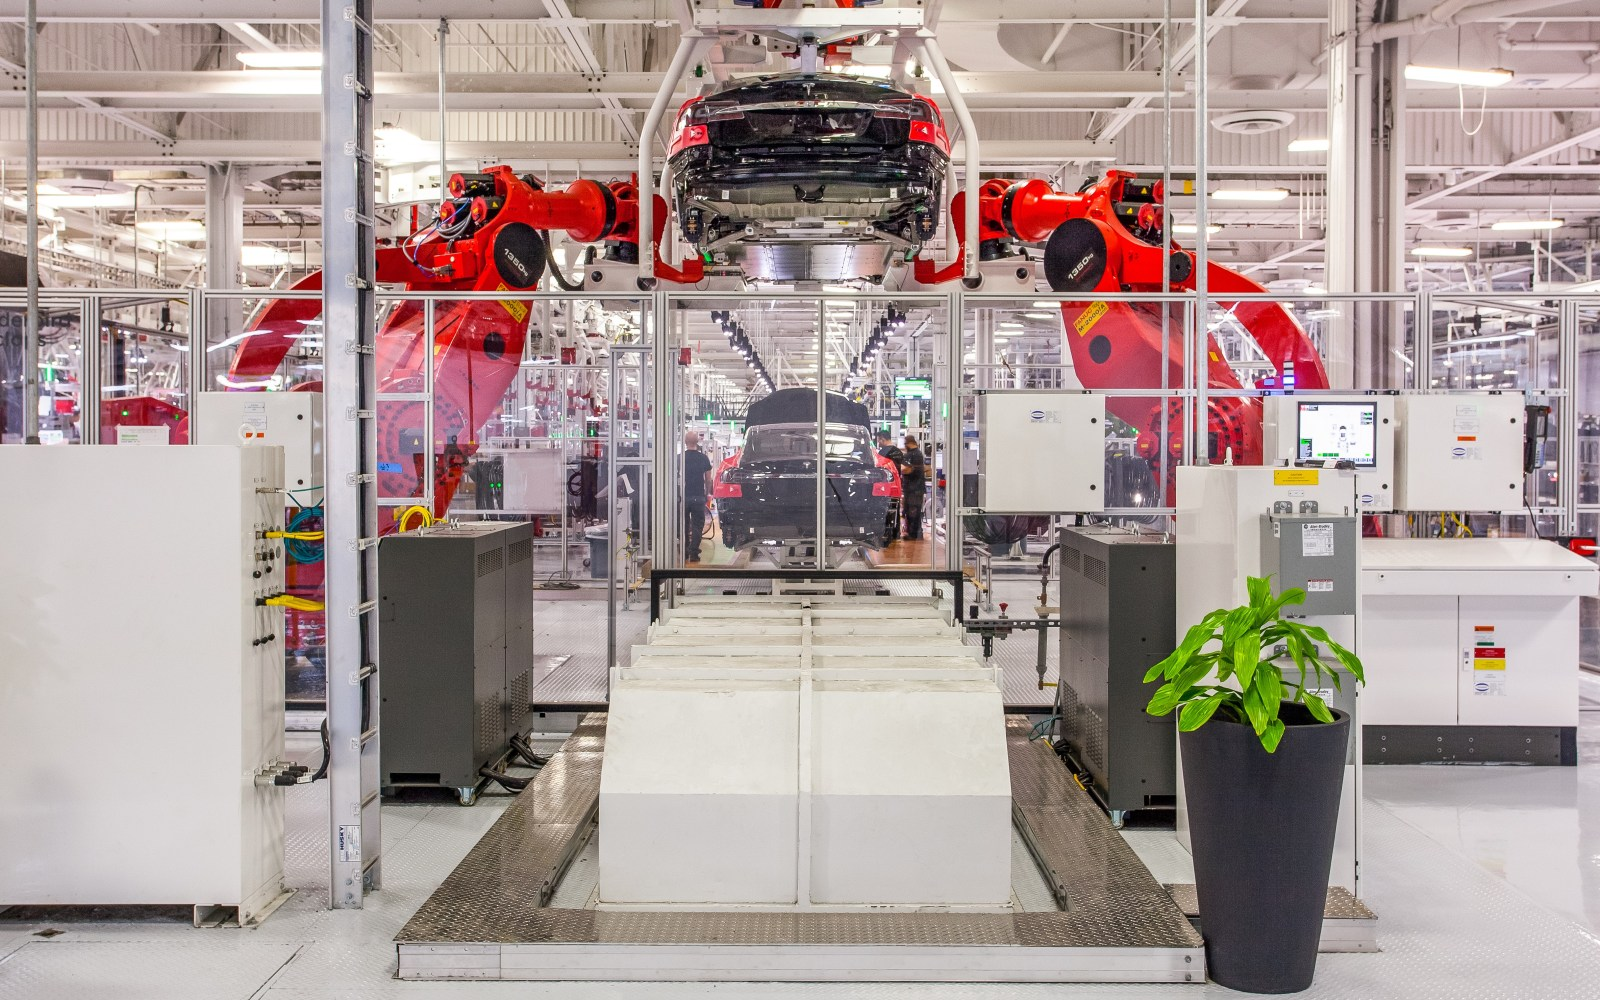 Tesla Model 3: Tesla's robot supplier vows to do everything it can to bring up production line on time